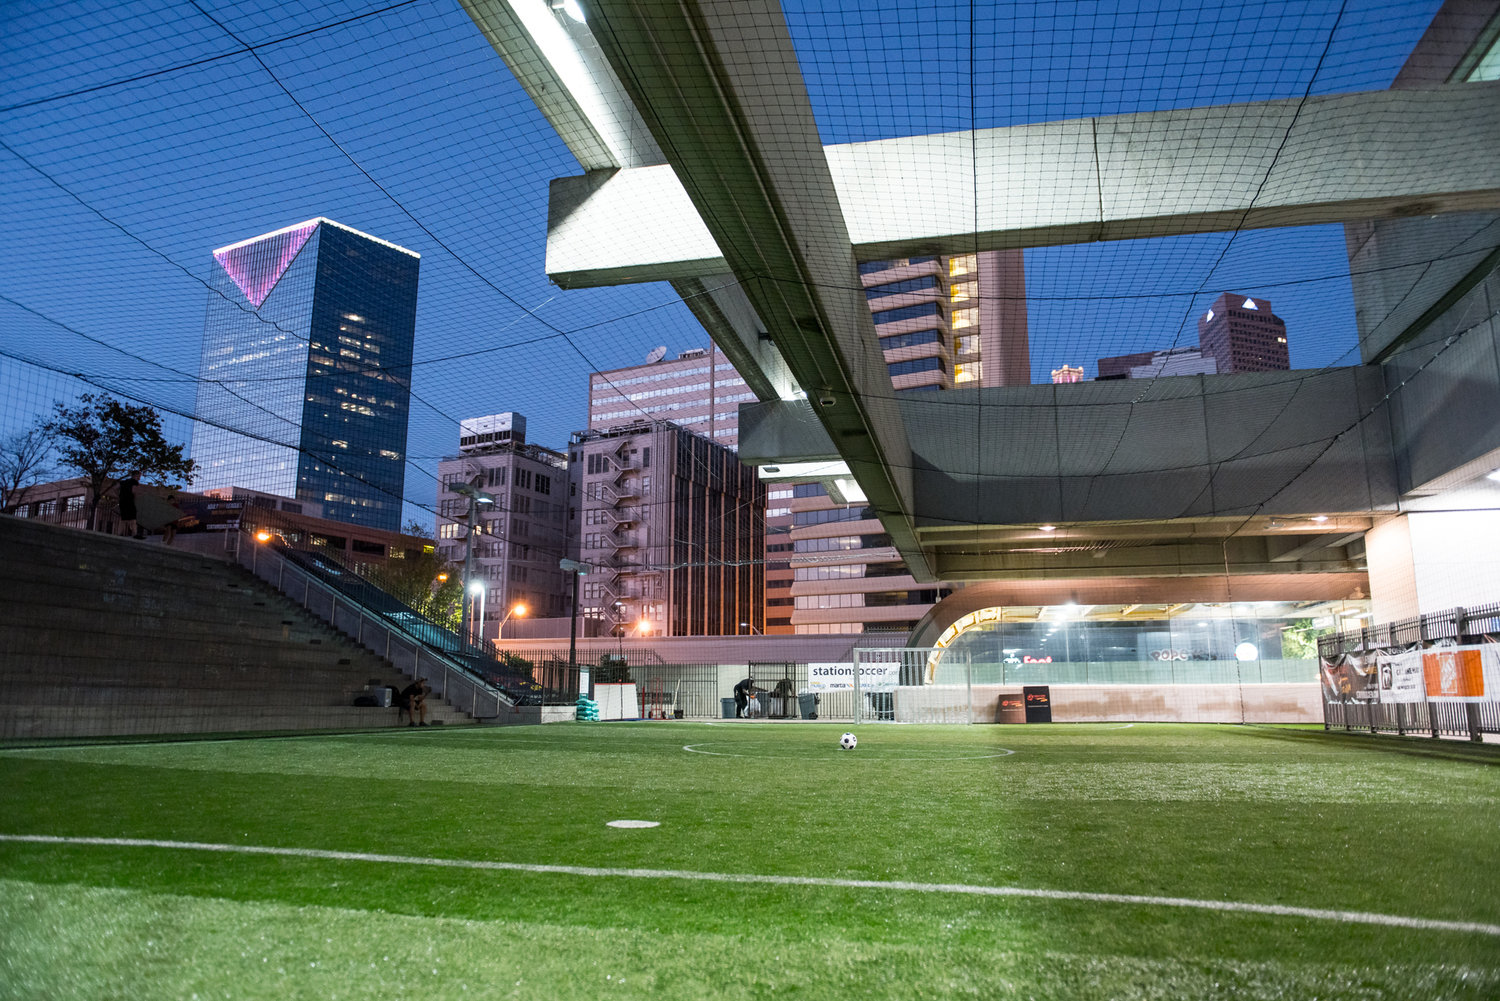 A small soccer field surrounded by the brutalist train station, with the downtown skyline beyond.